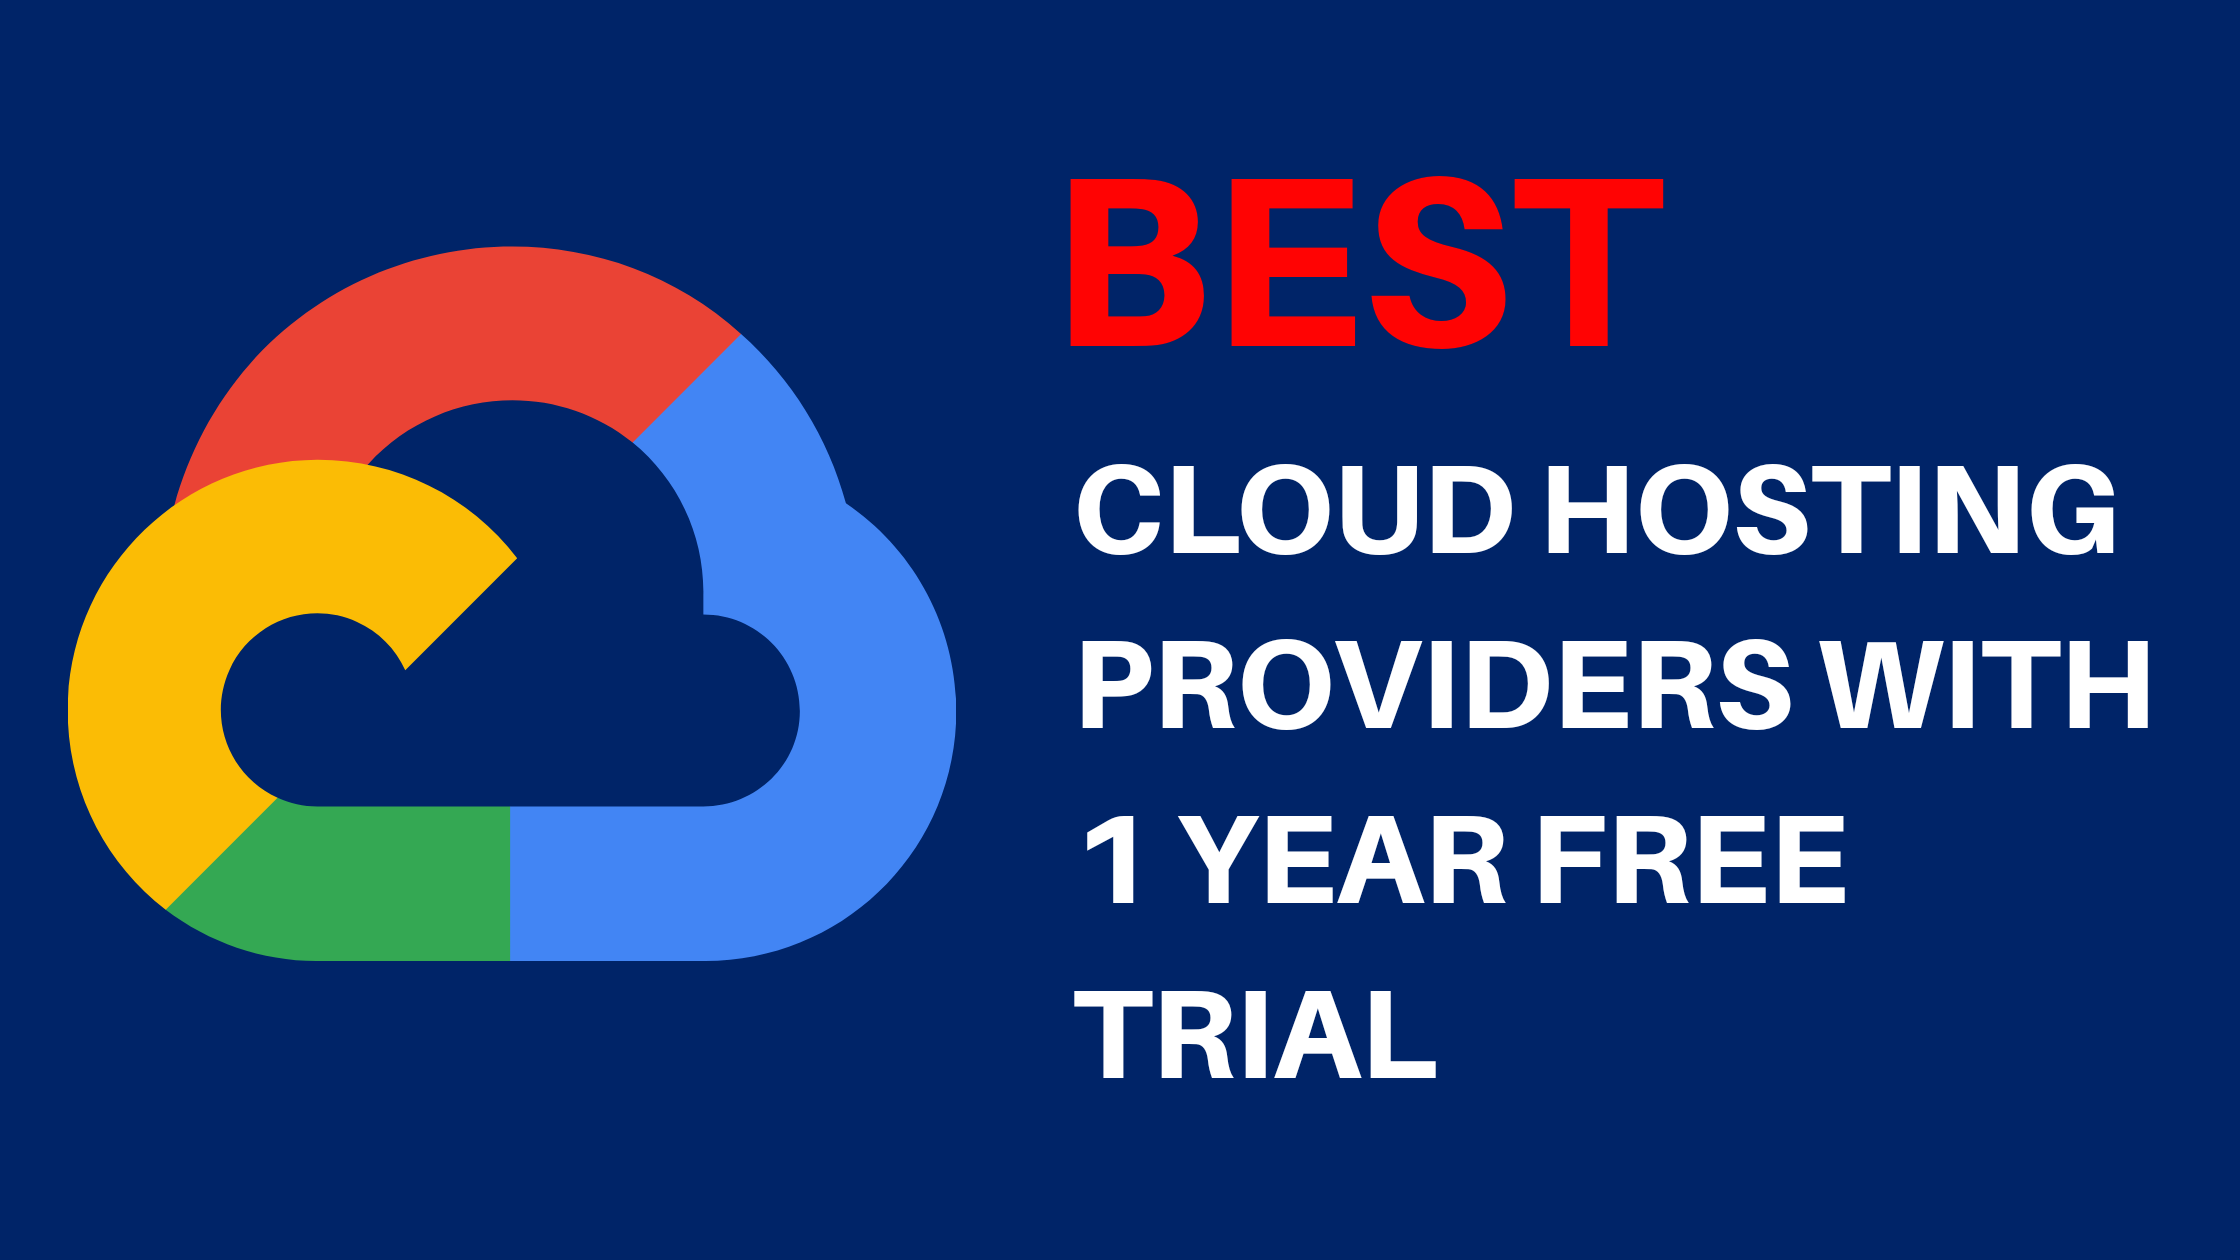 Best Cloud Hosting Providers with 1 Year Free Trial